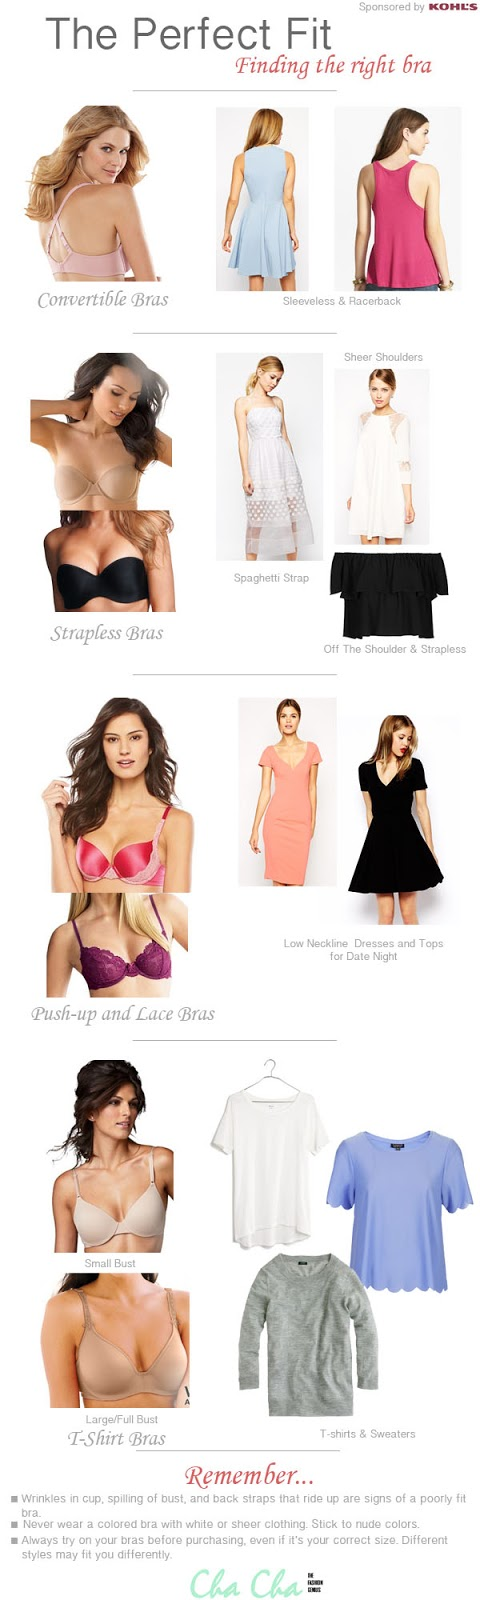 how to find the perfect fitting bra - what bra to wear with what outfits - strapless bra - nude bra - convertible bra - tshirt bra - kohl's bra